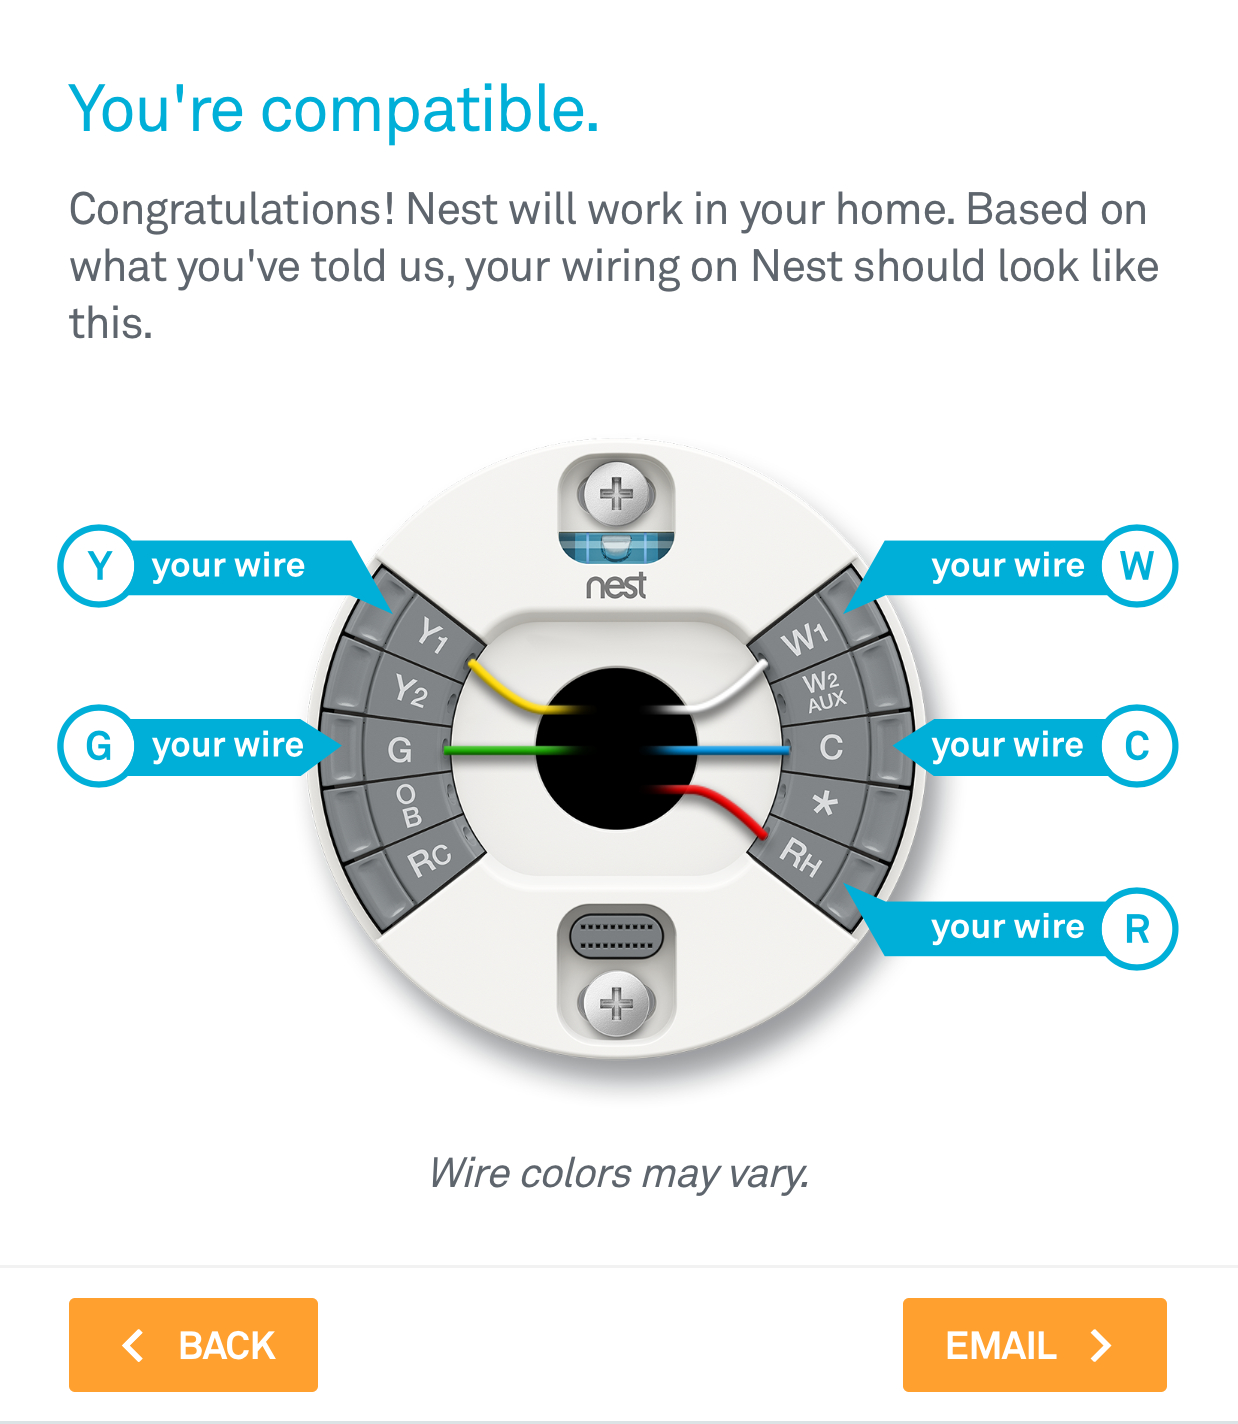 Wiring Diagram For Nest Thermostat | Wiring Library - Nest Thermostat Wiring Diagram York